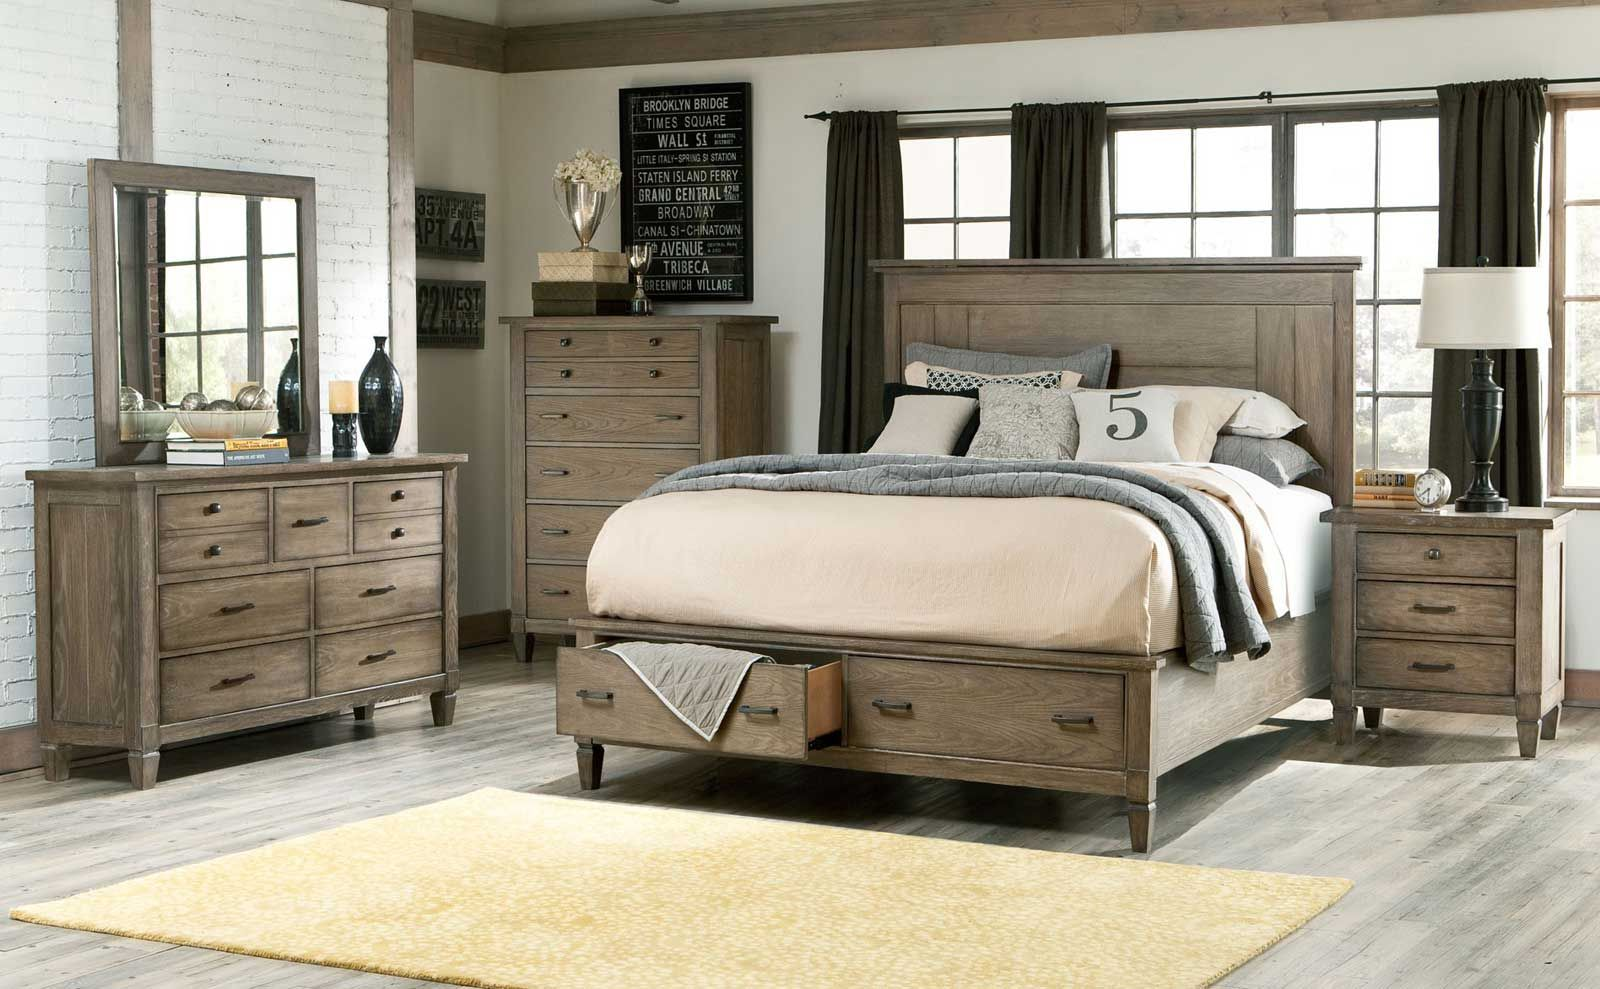 Modern Bedroom Furniture Sets Image Result For Wood King Size Bedroom Sets Farm House Master